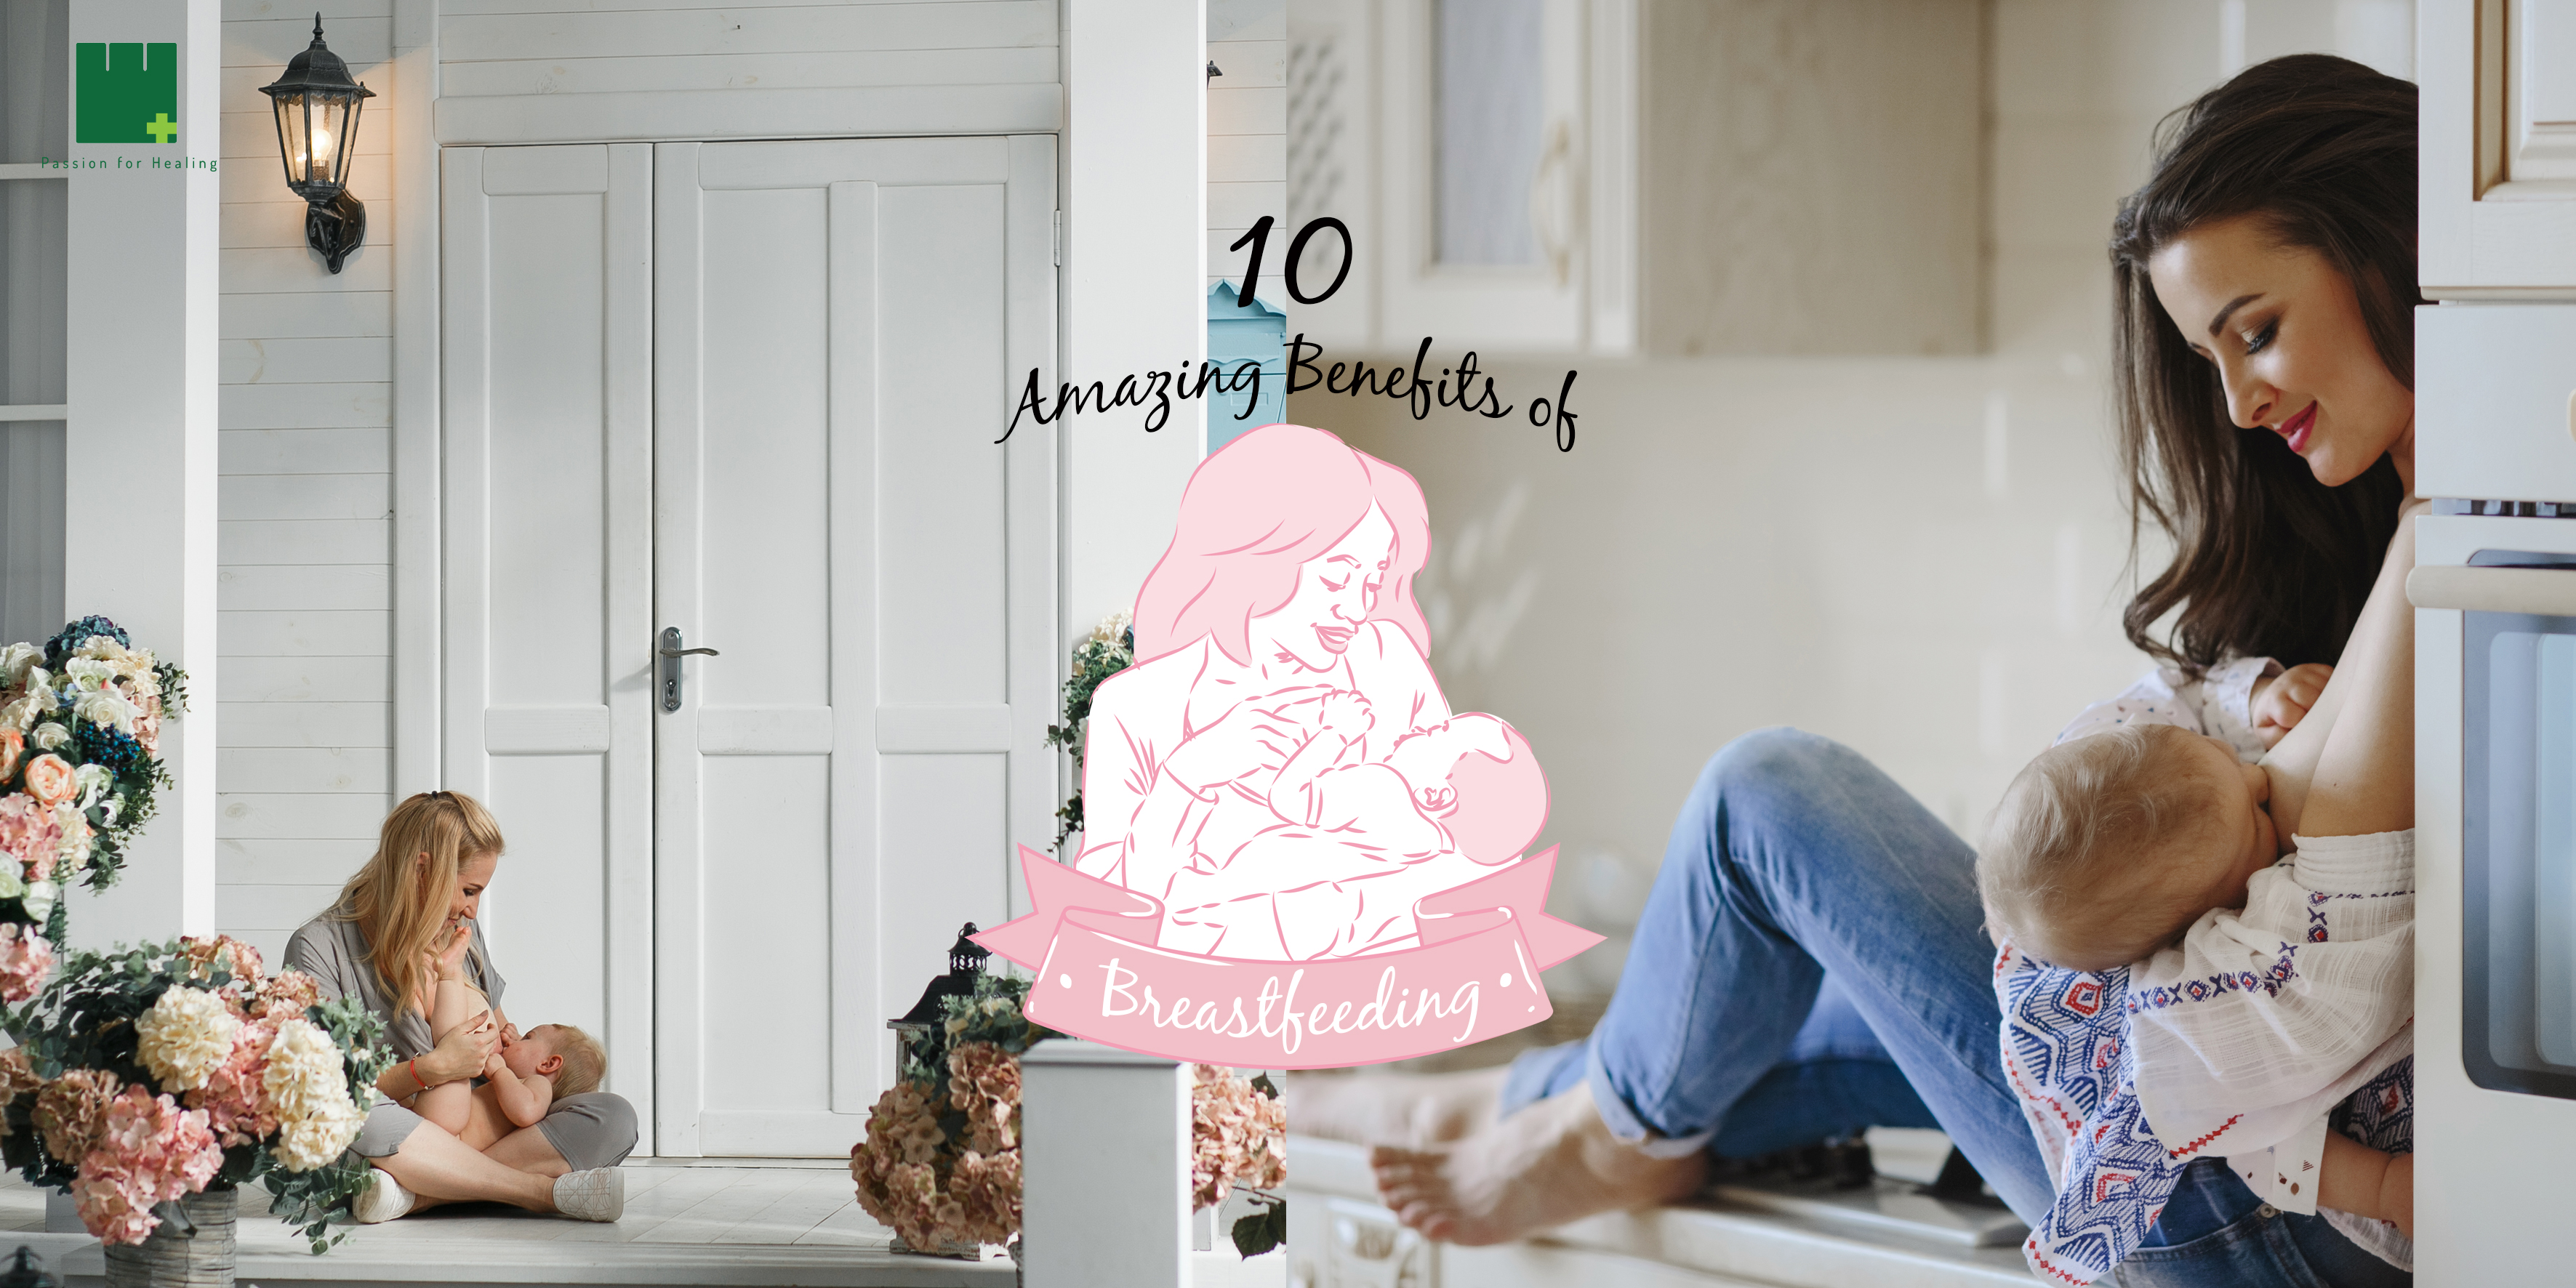 10 Amazing Benefits Of Breastfeeding